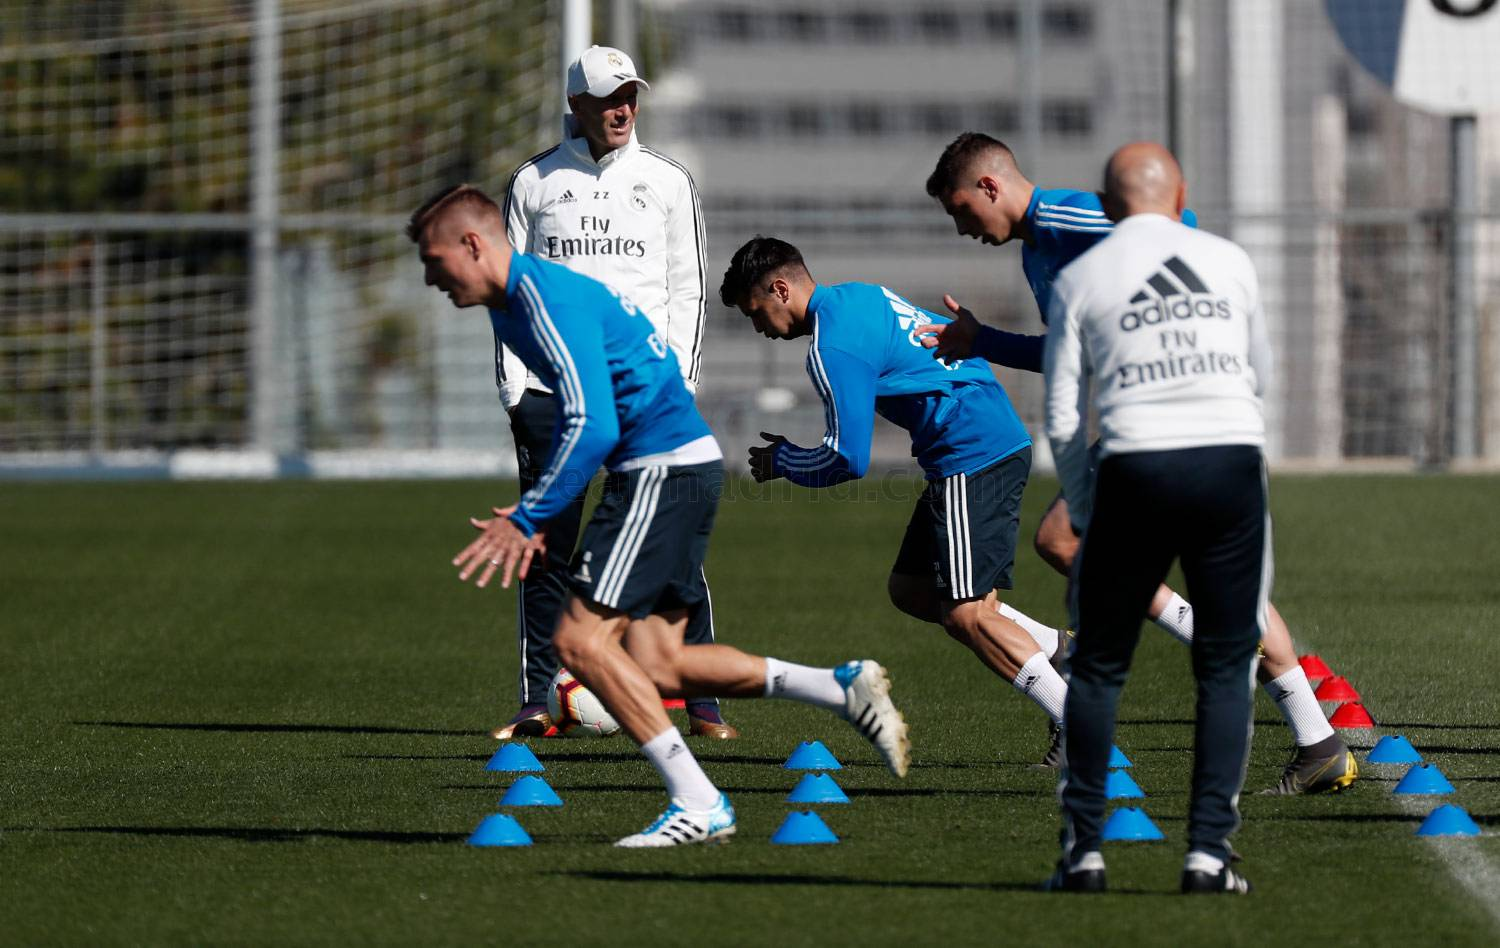 Real Madrid - Entrenamiento del Real Madrid - 15-03-2019